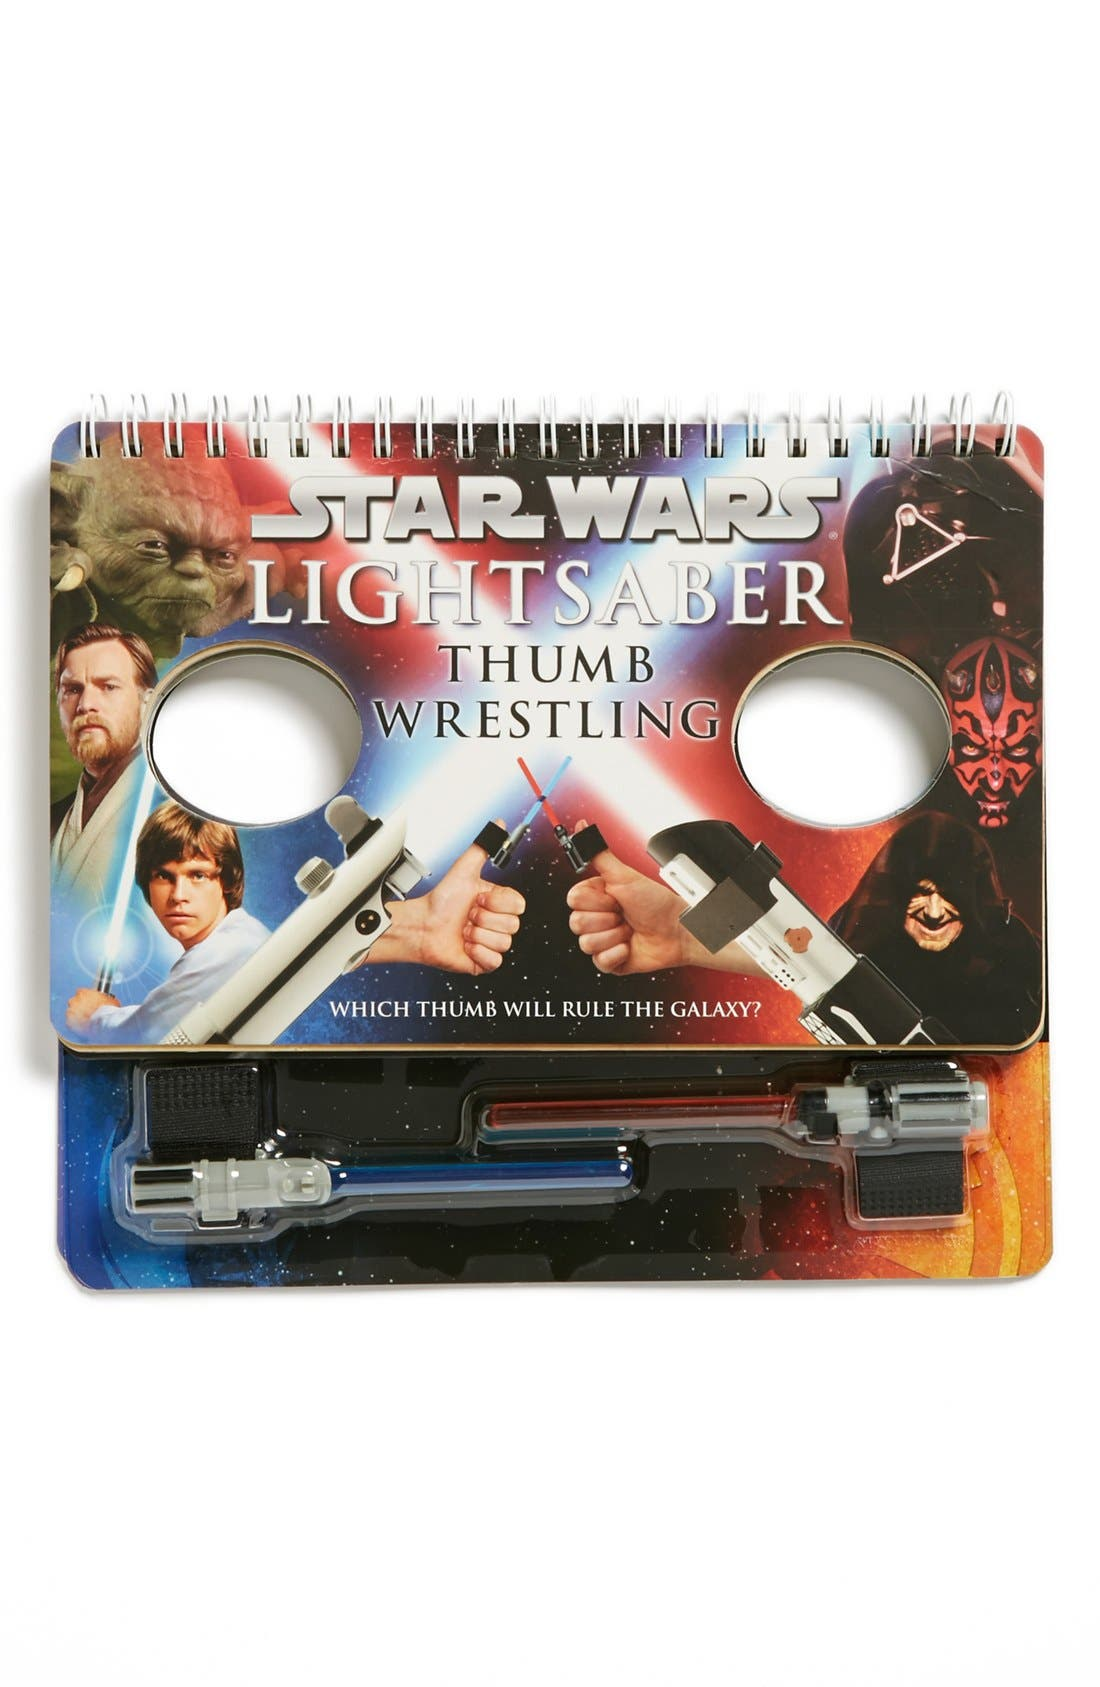 Main Image - 'Star Wars™ Lightsaber Thumb Wrestling' Book